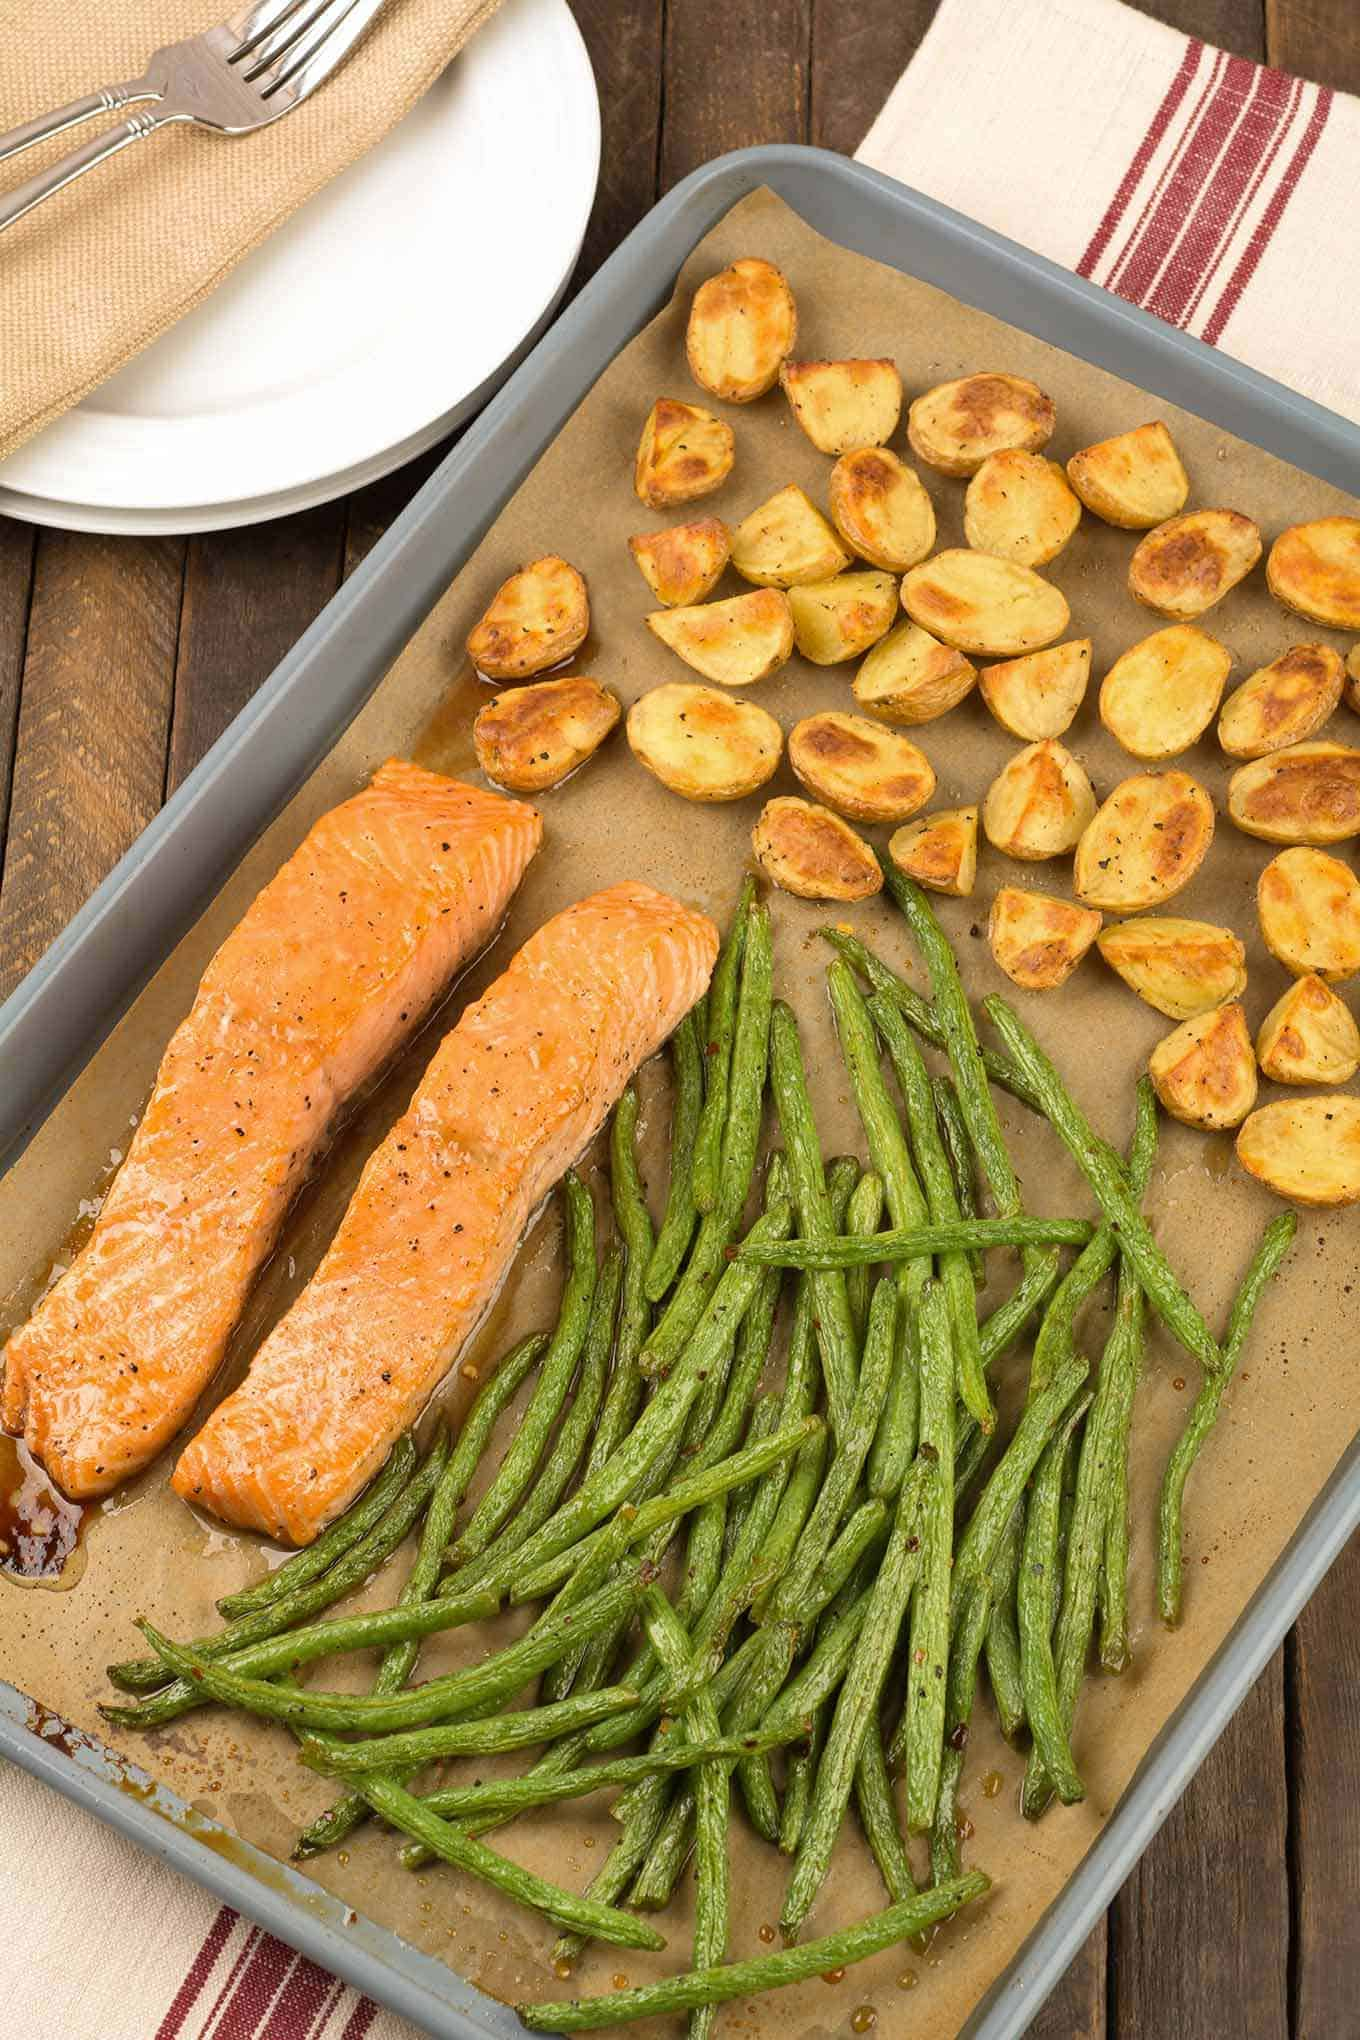 Sheet Pan Salmon with Potatoes and Green Beans